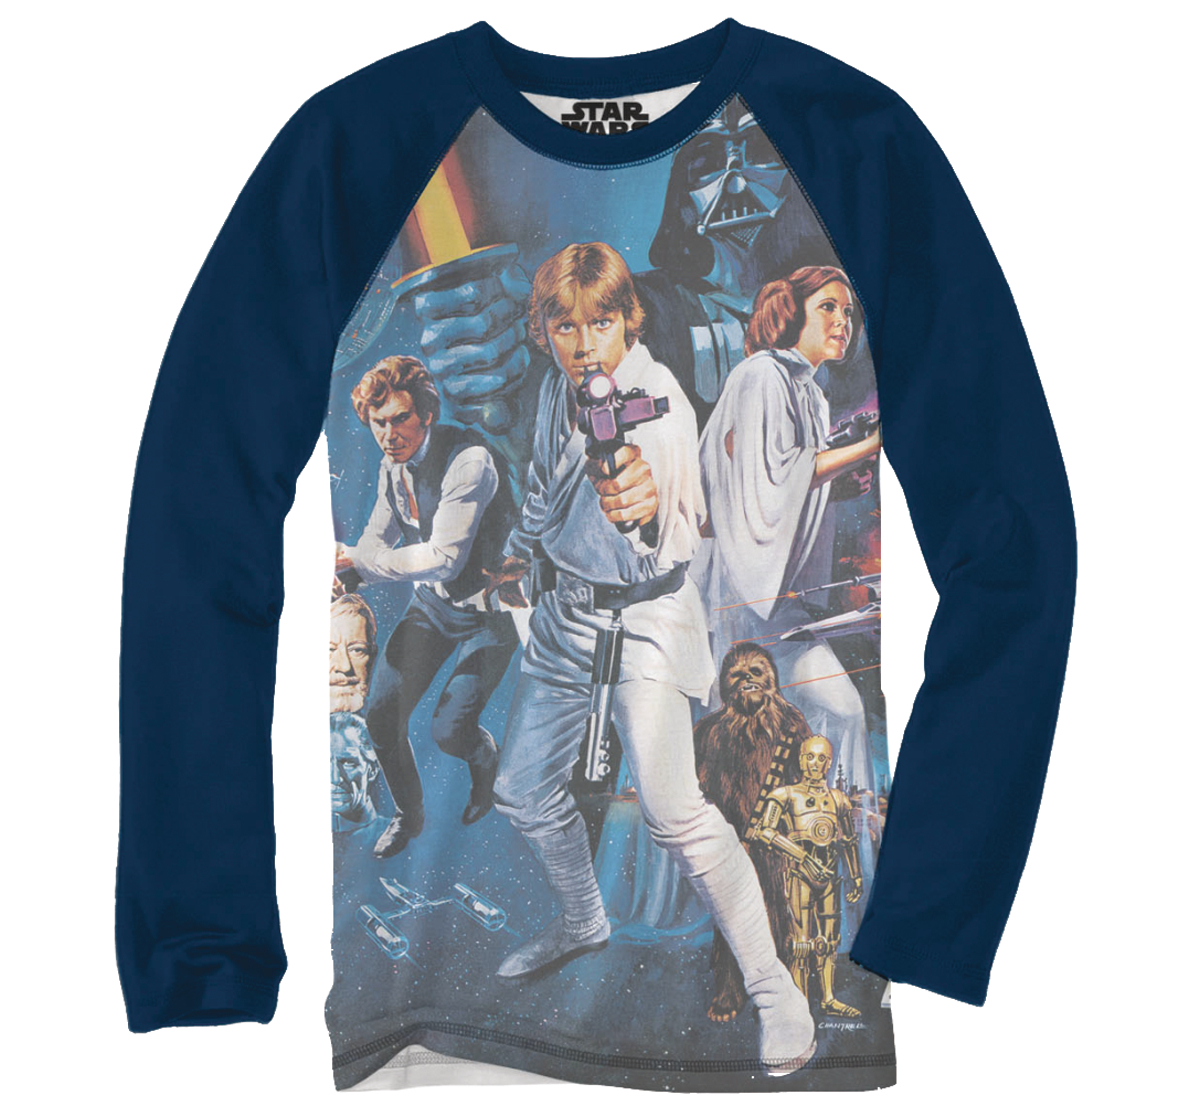 SW JUMBO POSTER NAVY LONG SLEEVE T/S XL